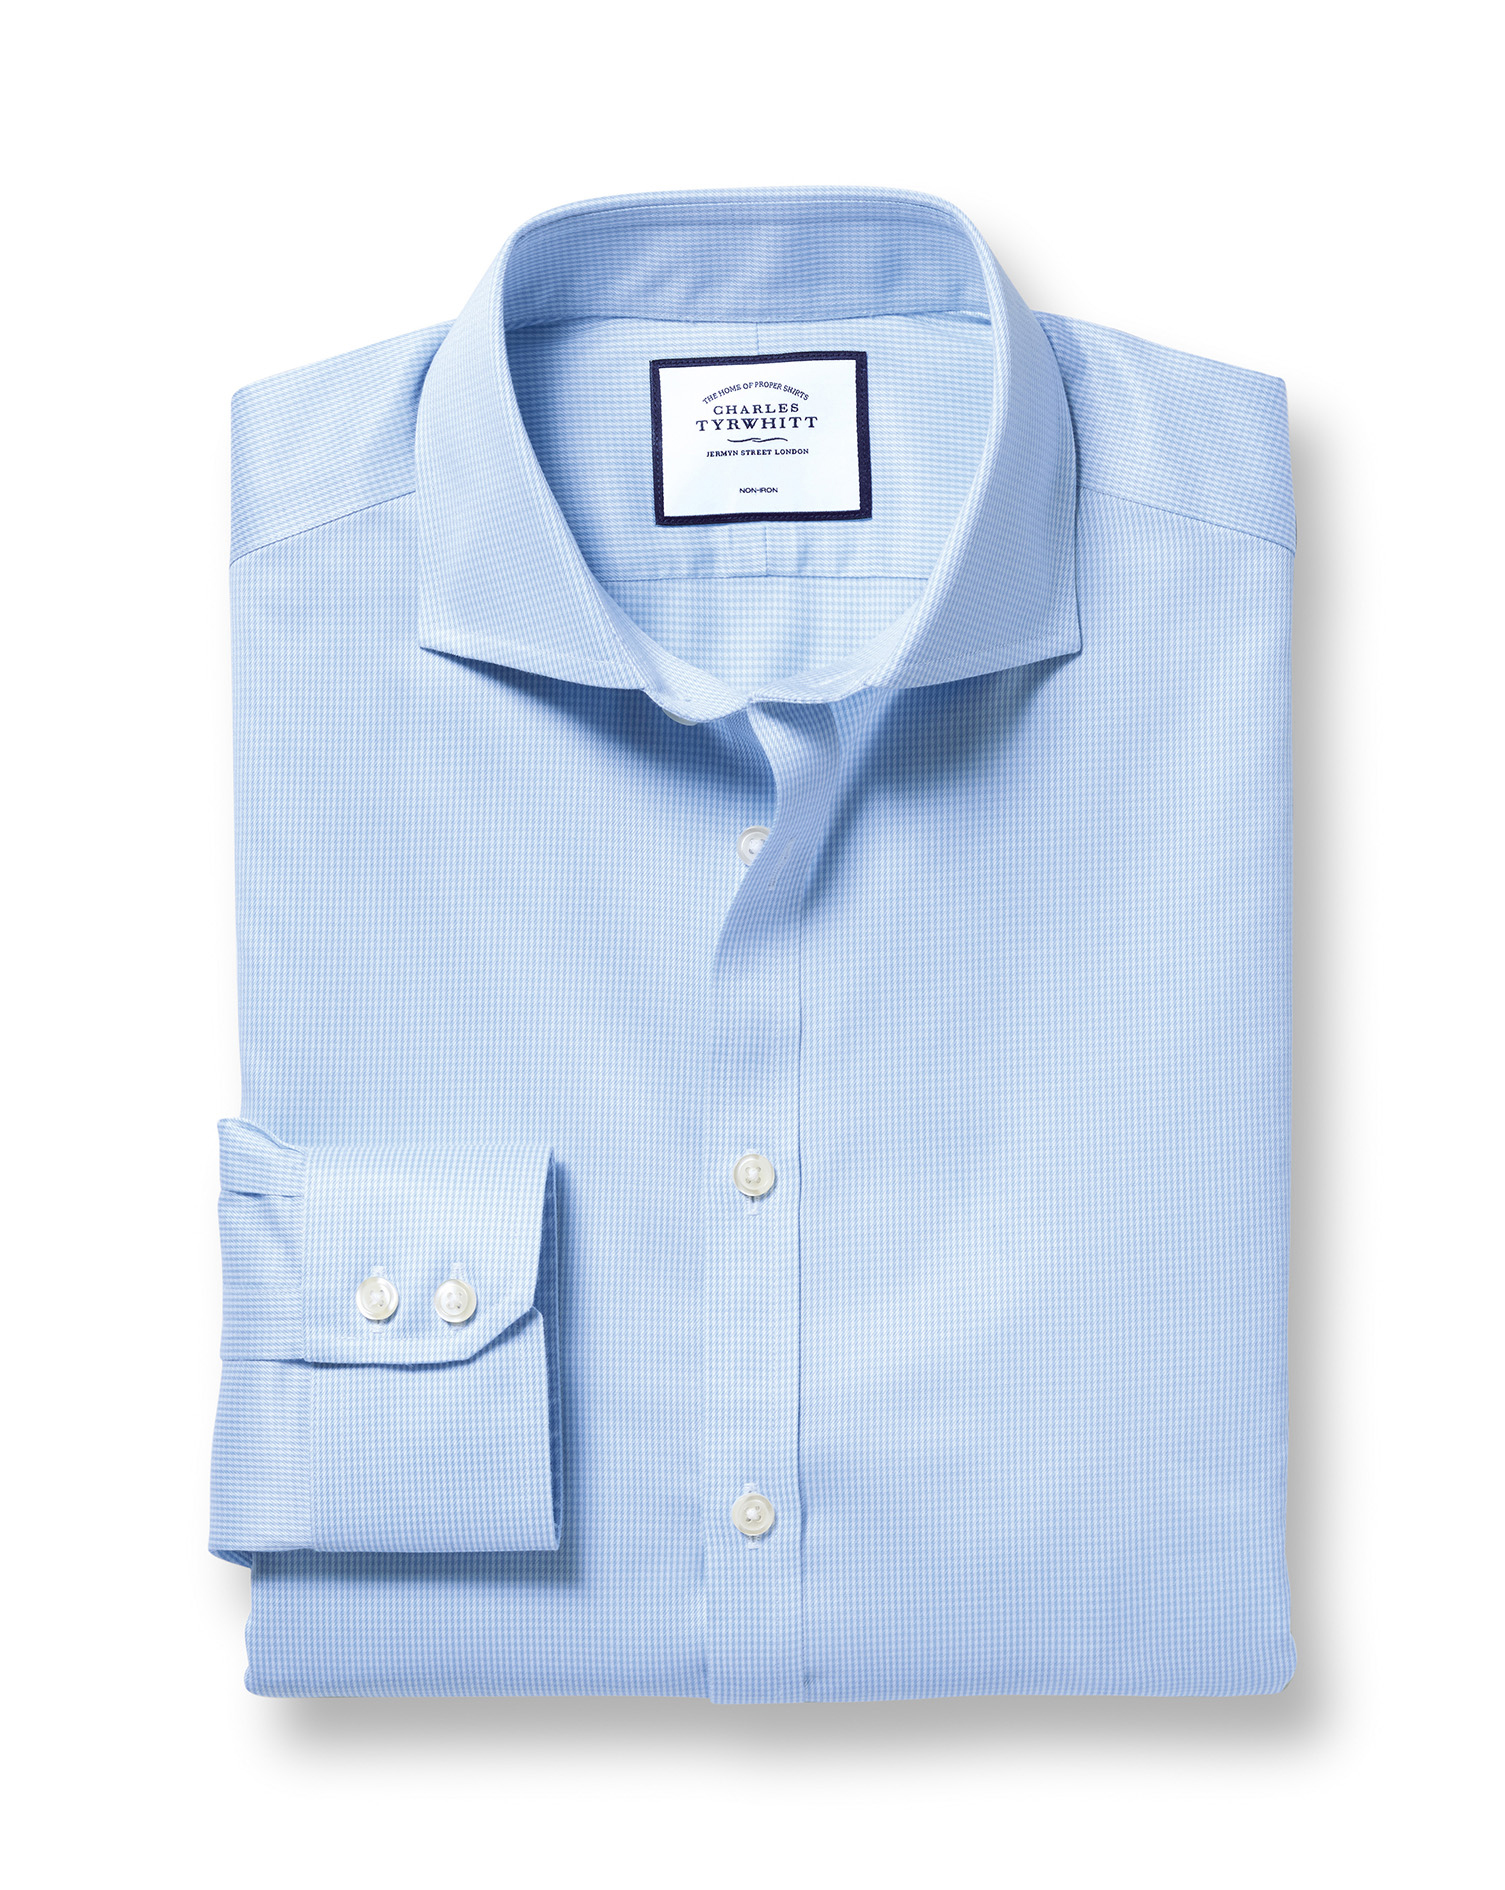 Extra Slim Fit Cutaway Non-Iron Puppytooth Sky Blue Cotton Formal Shirt Double Cuff Size 16/34 by Ch